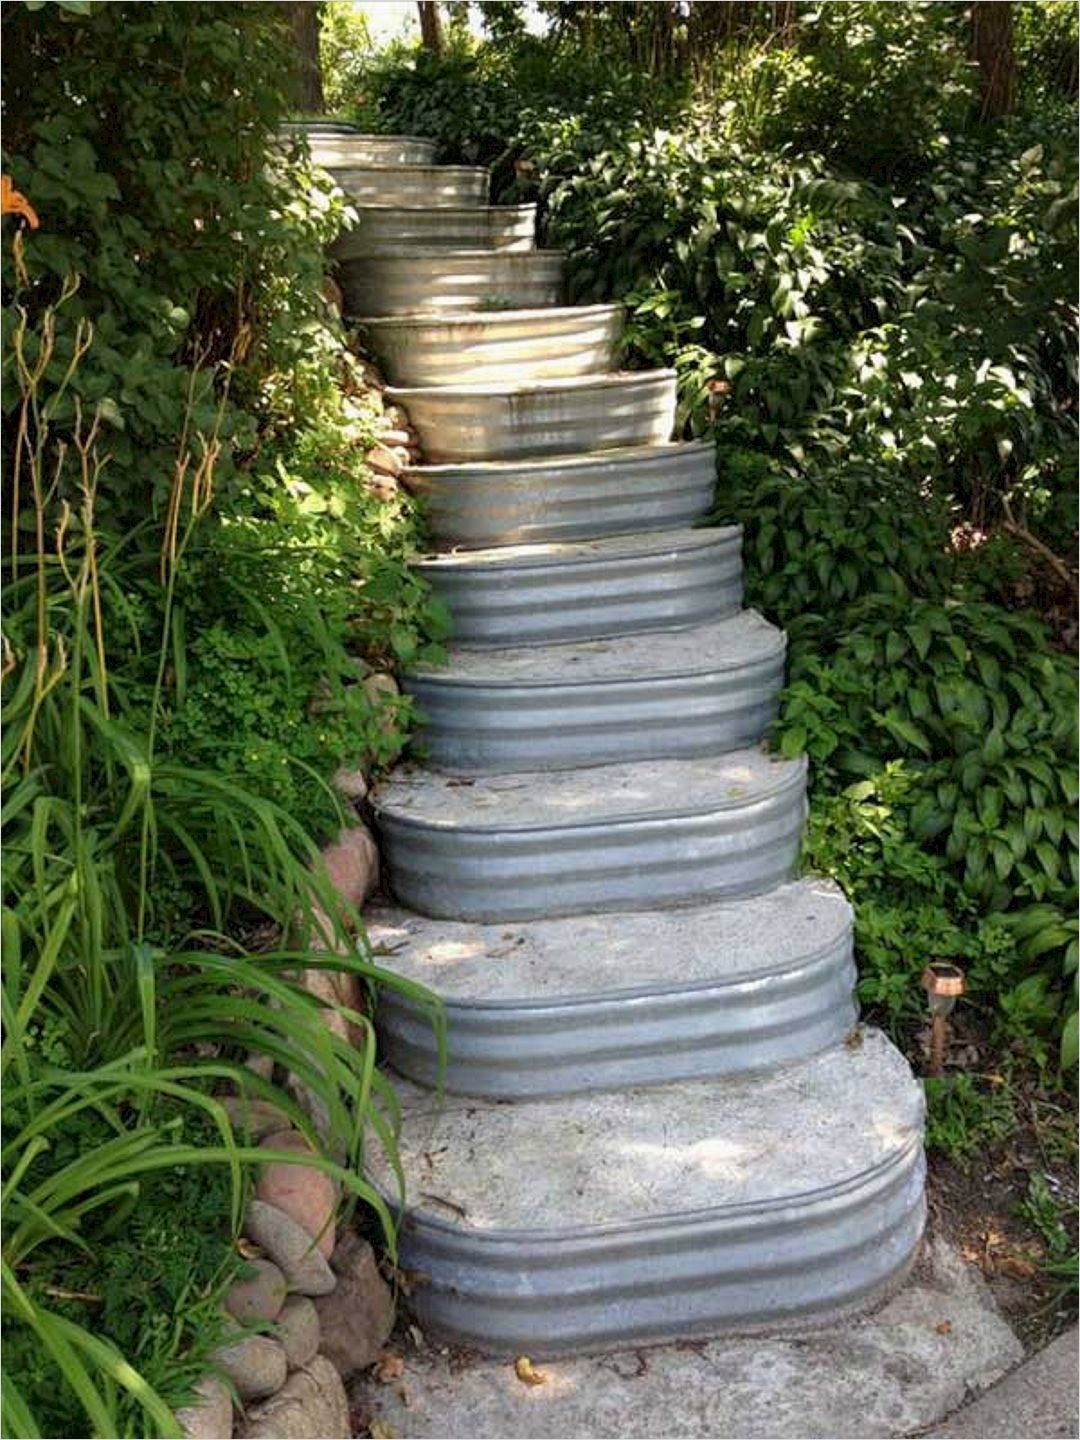 44 Amazing Rustic Garden Ideas 41 80 Brilliant Diy Vintage and Rustic Garden Decor Ideas On A Bud You Need to Try Right now 1